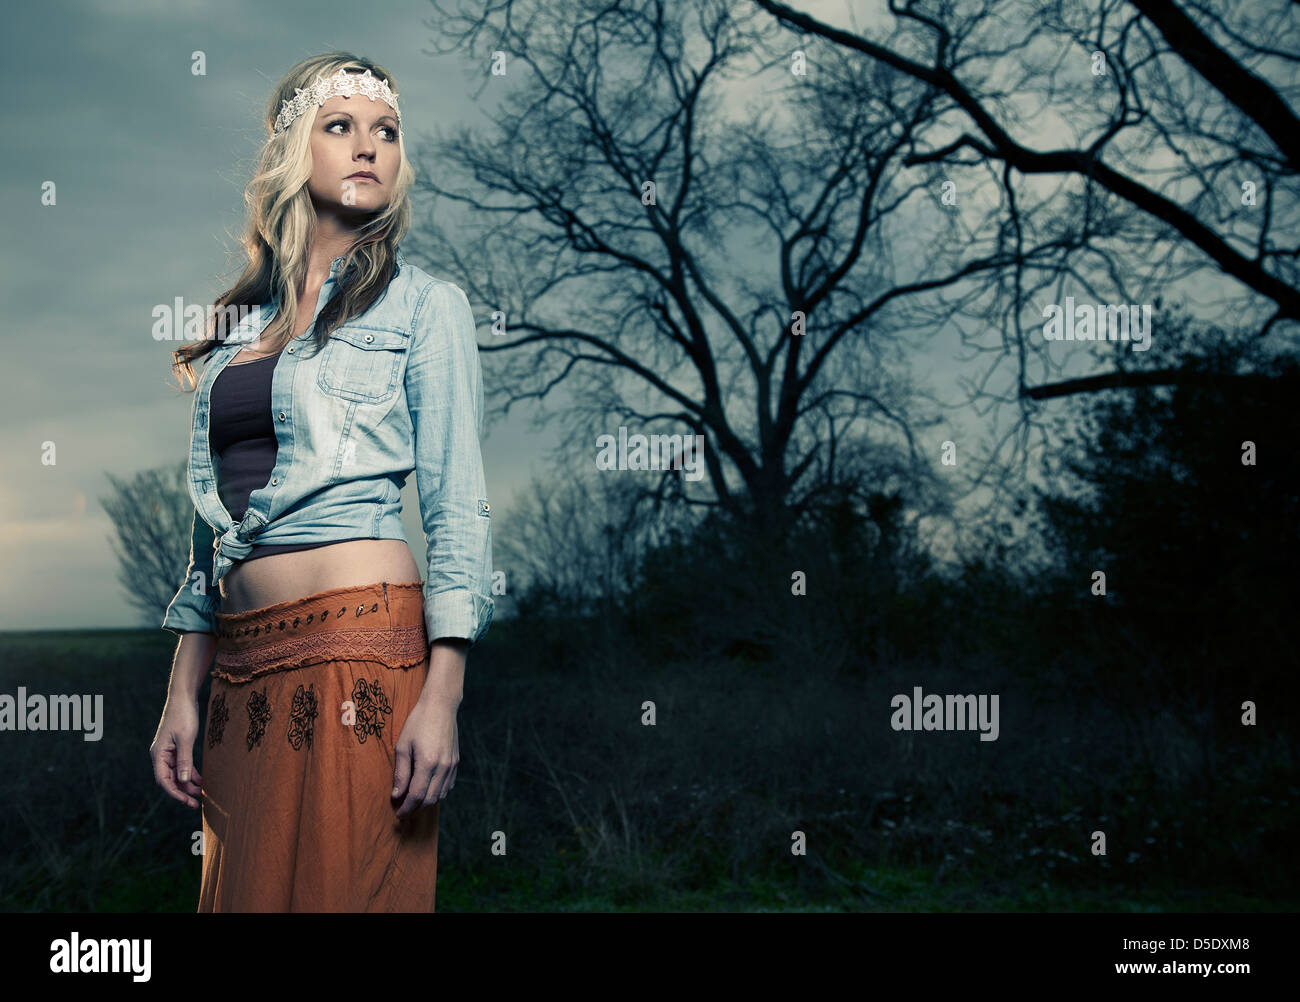 Woman sixties dress standing in field against sky - Stock Image